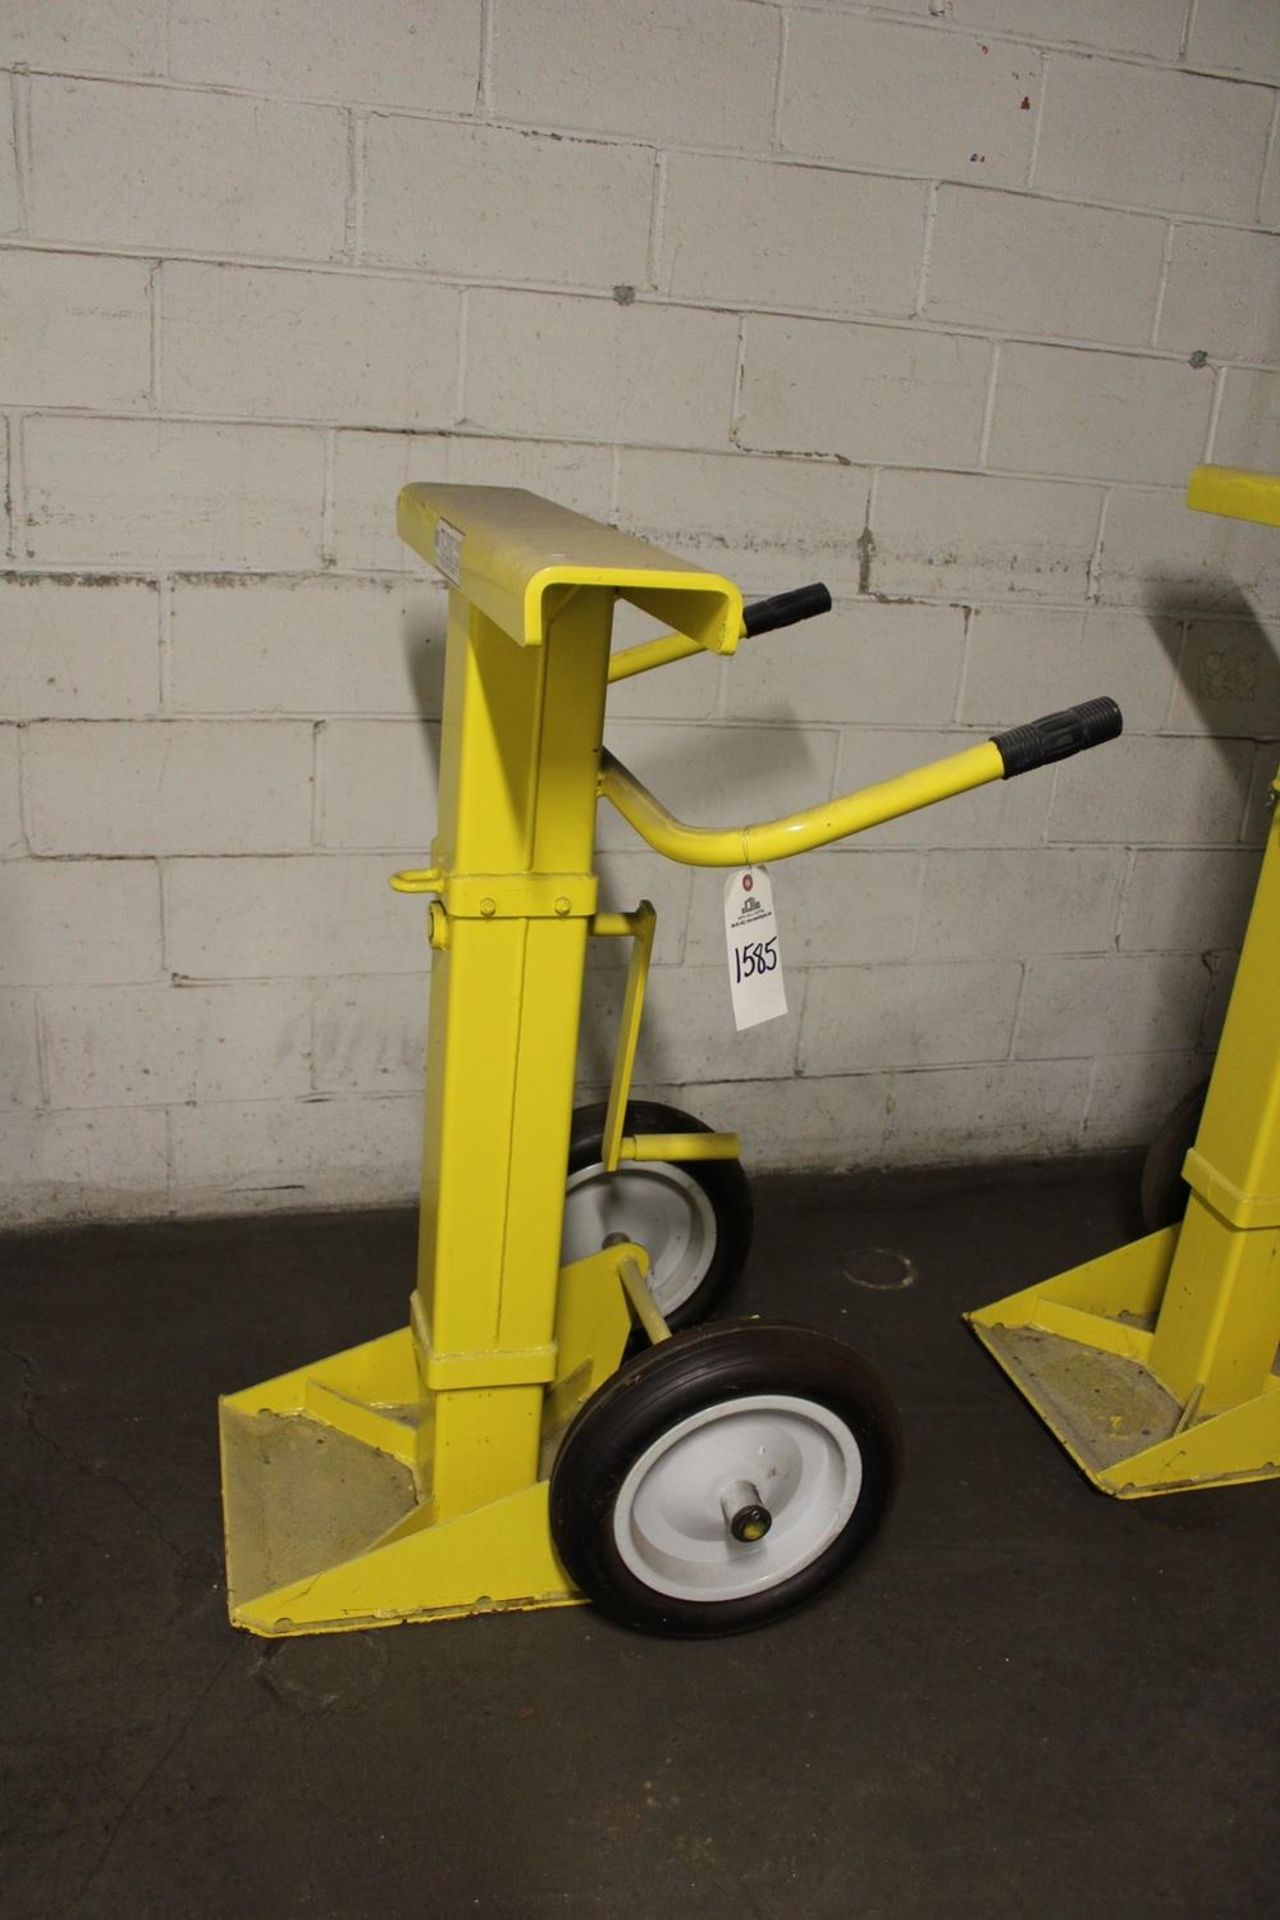 Lot 1585 - Rite Hite TS-2000 Trailer Stand - Subject to Bulk Bid Lot 15 | Rig Fee: Hand Carry or Contact Rigger